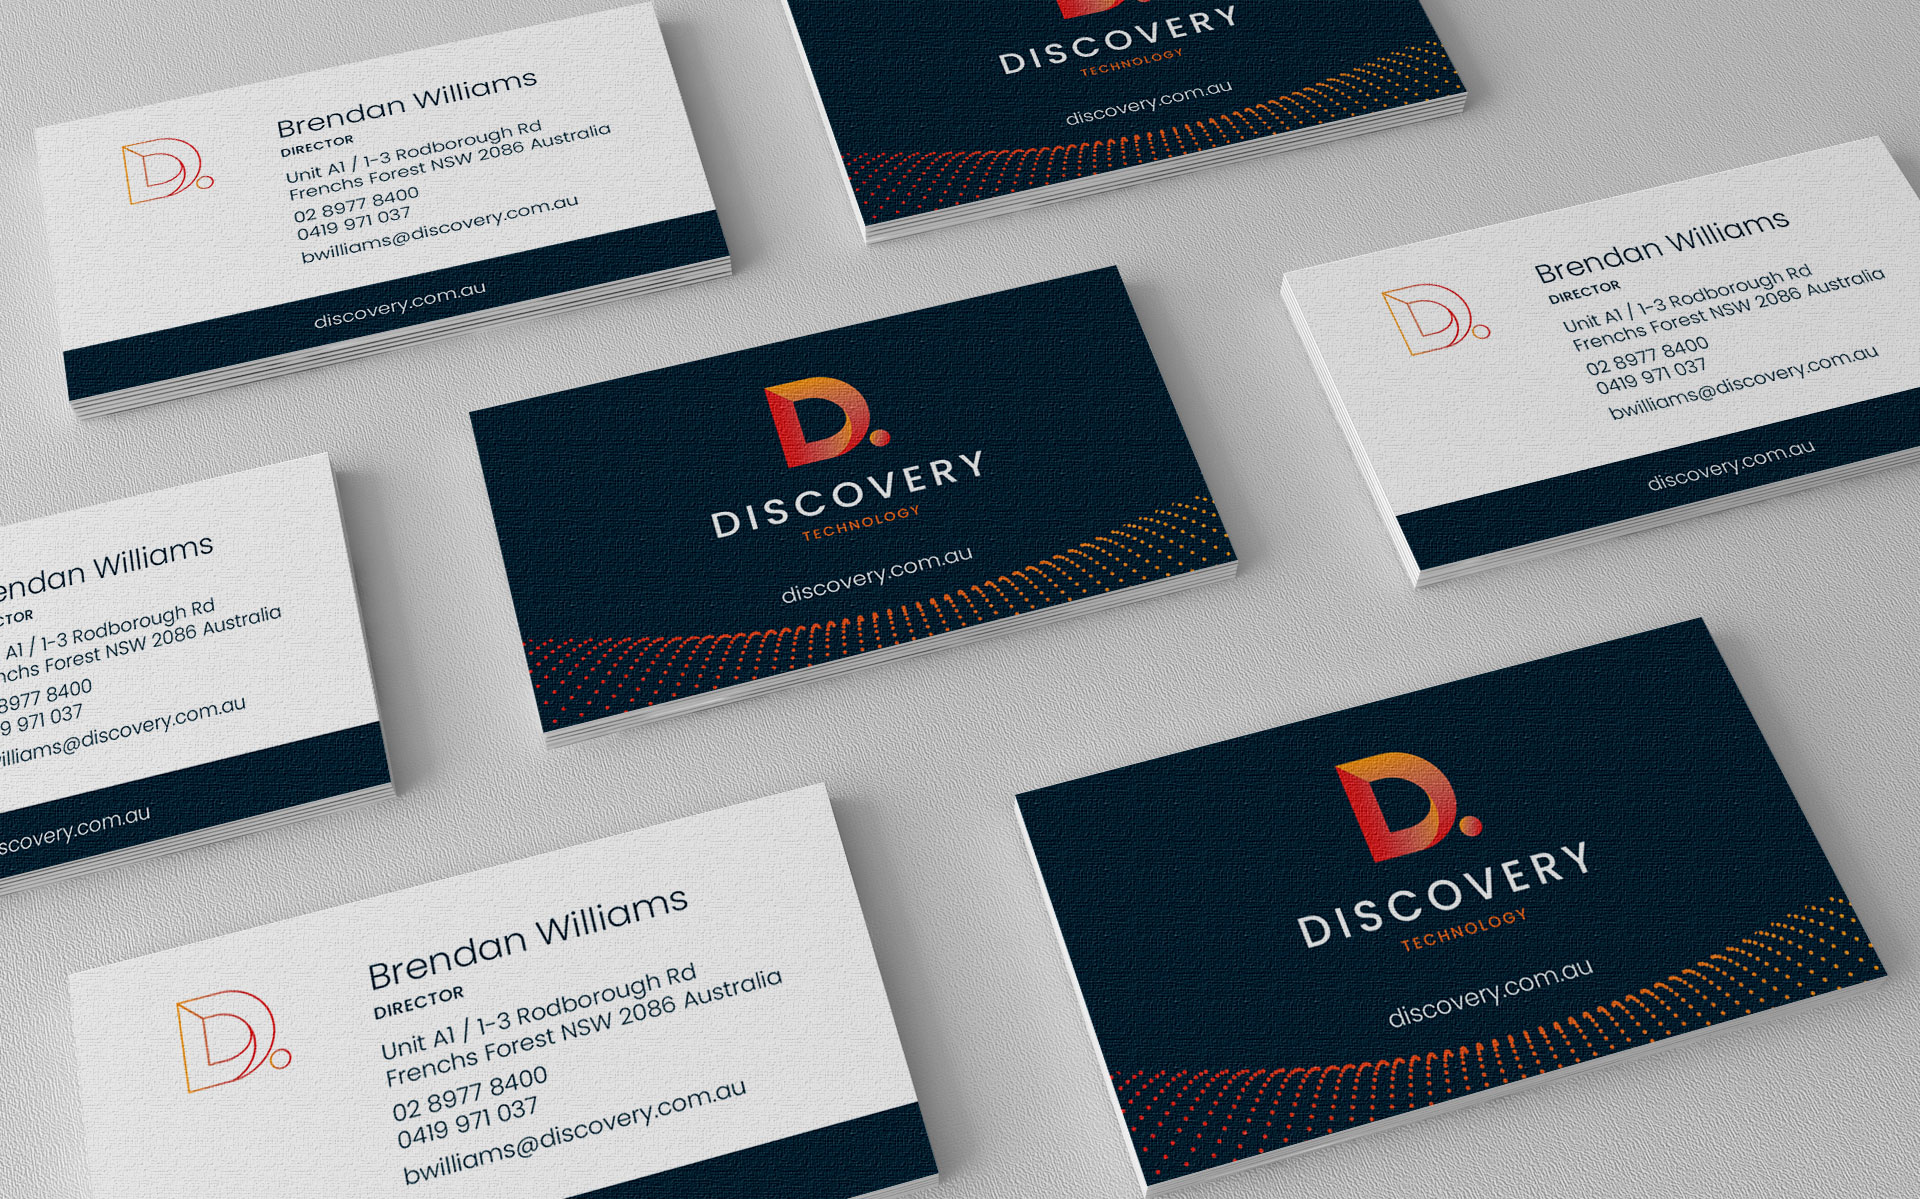 Discovery Technology